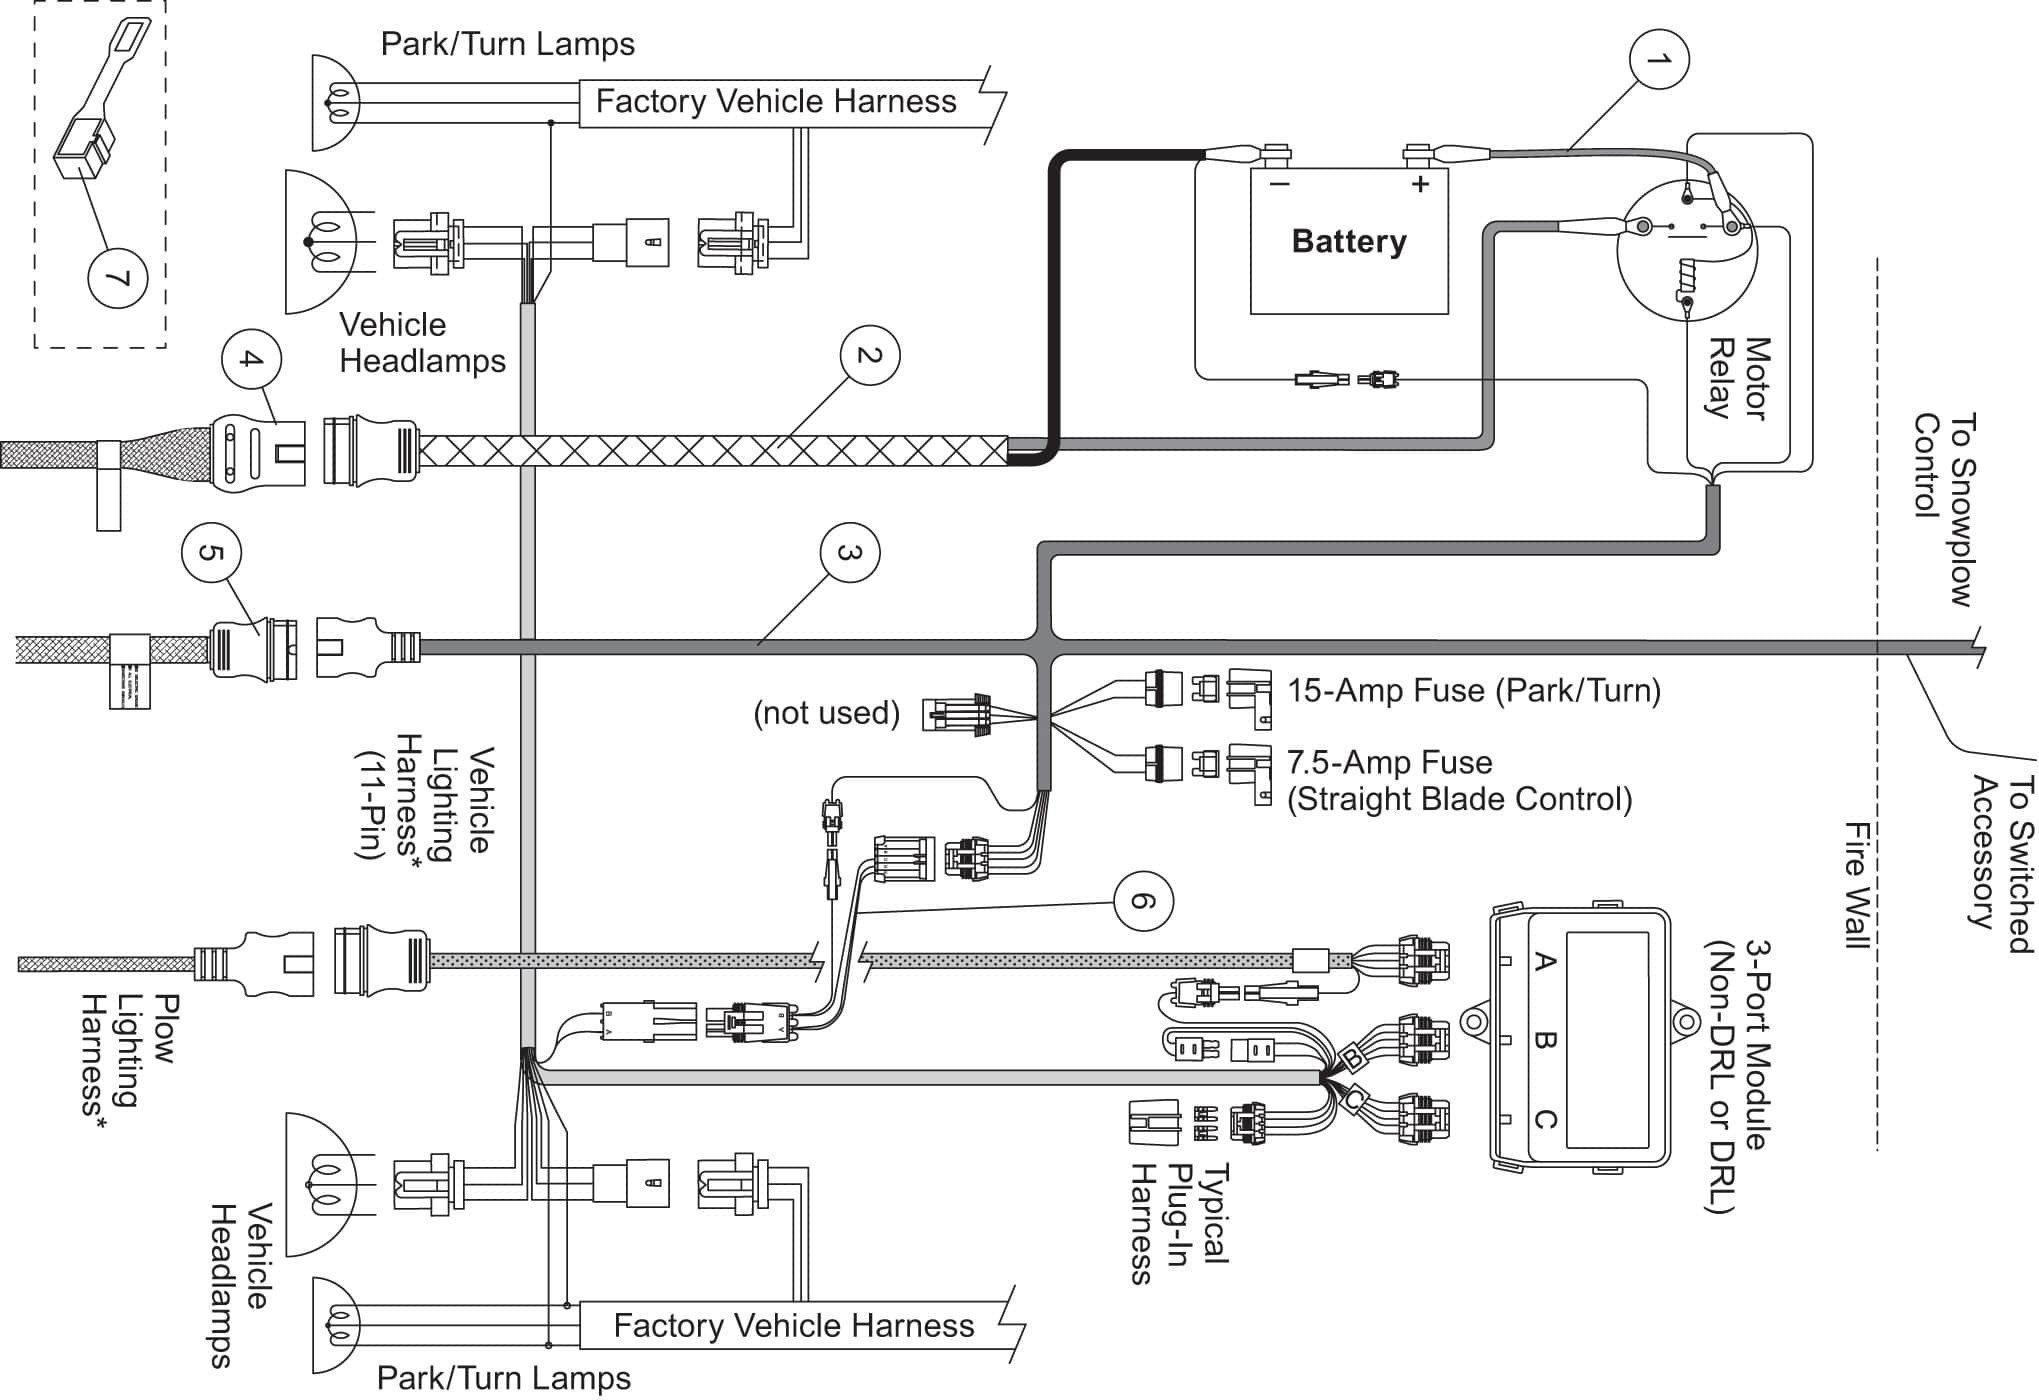 Meyer Snow Plow Wiring Diagram Snow Plow Wiring Diagrams Download Of Meyer Snow Plow Wiring Diagram Myers Qp 30 Wiring Diagram Wiring